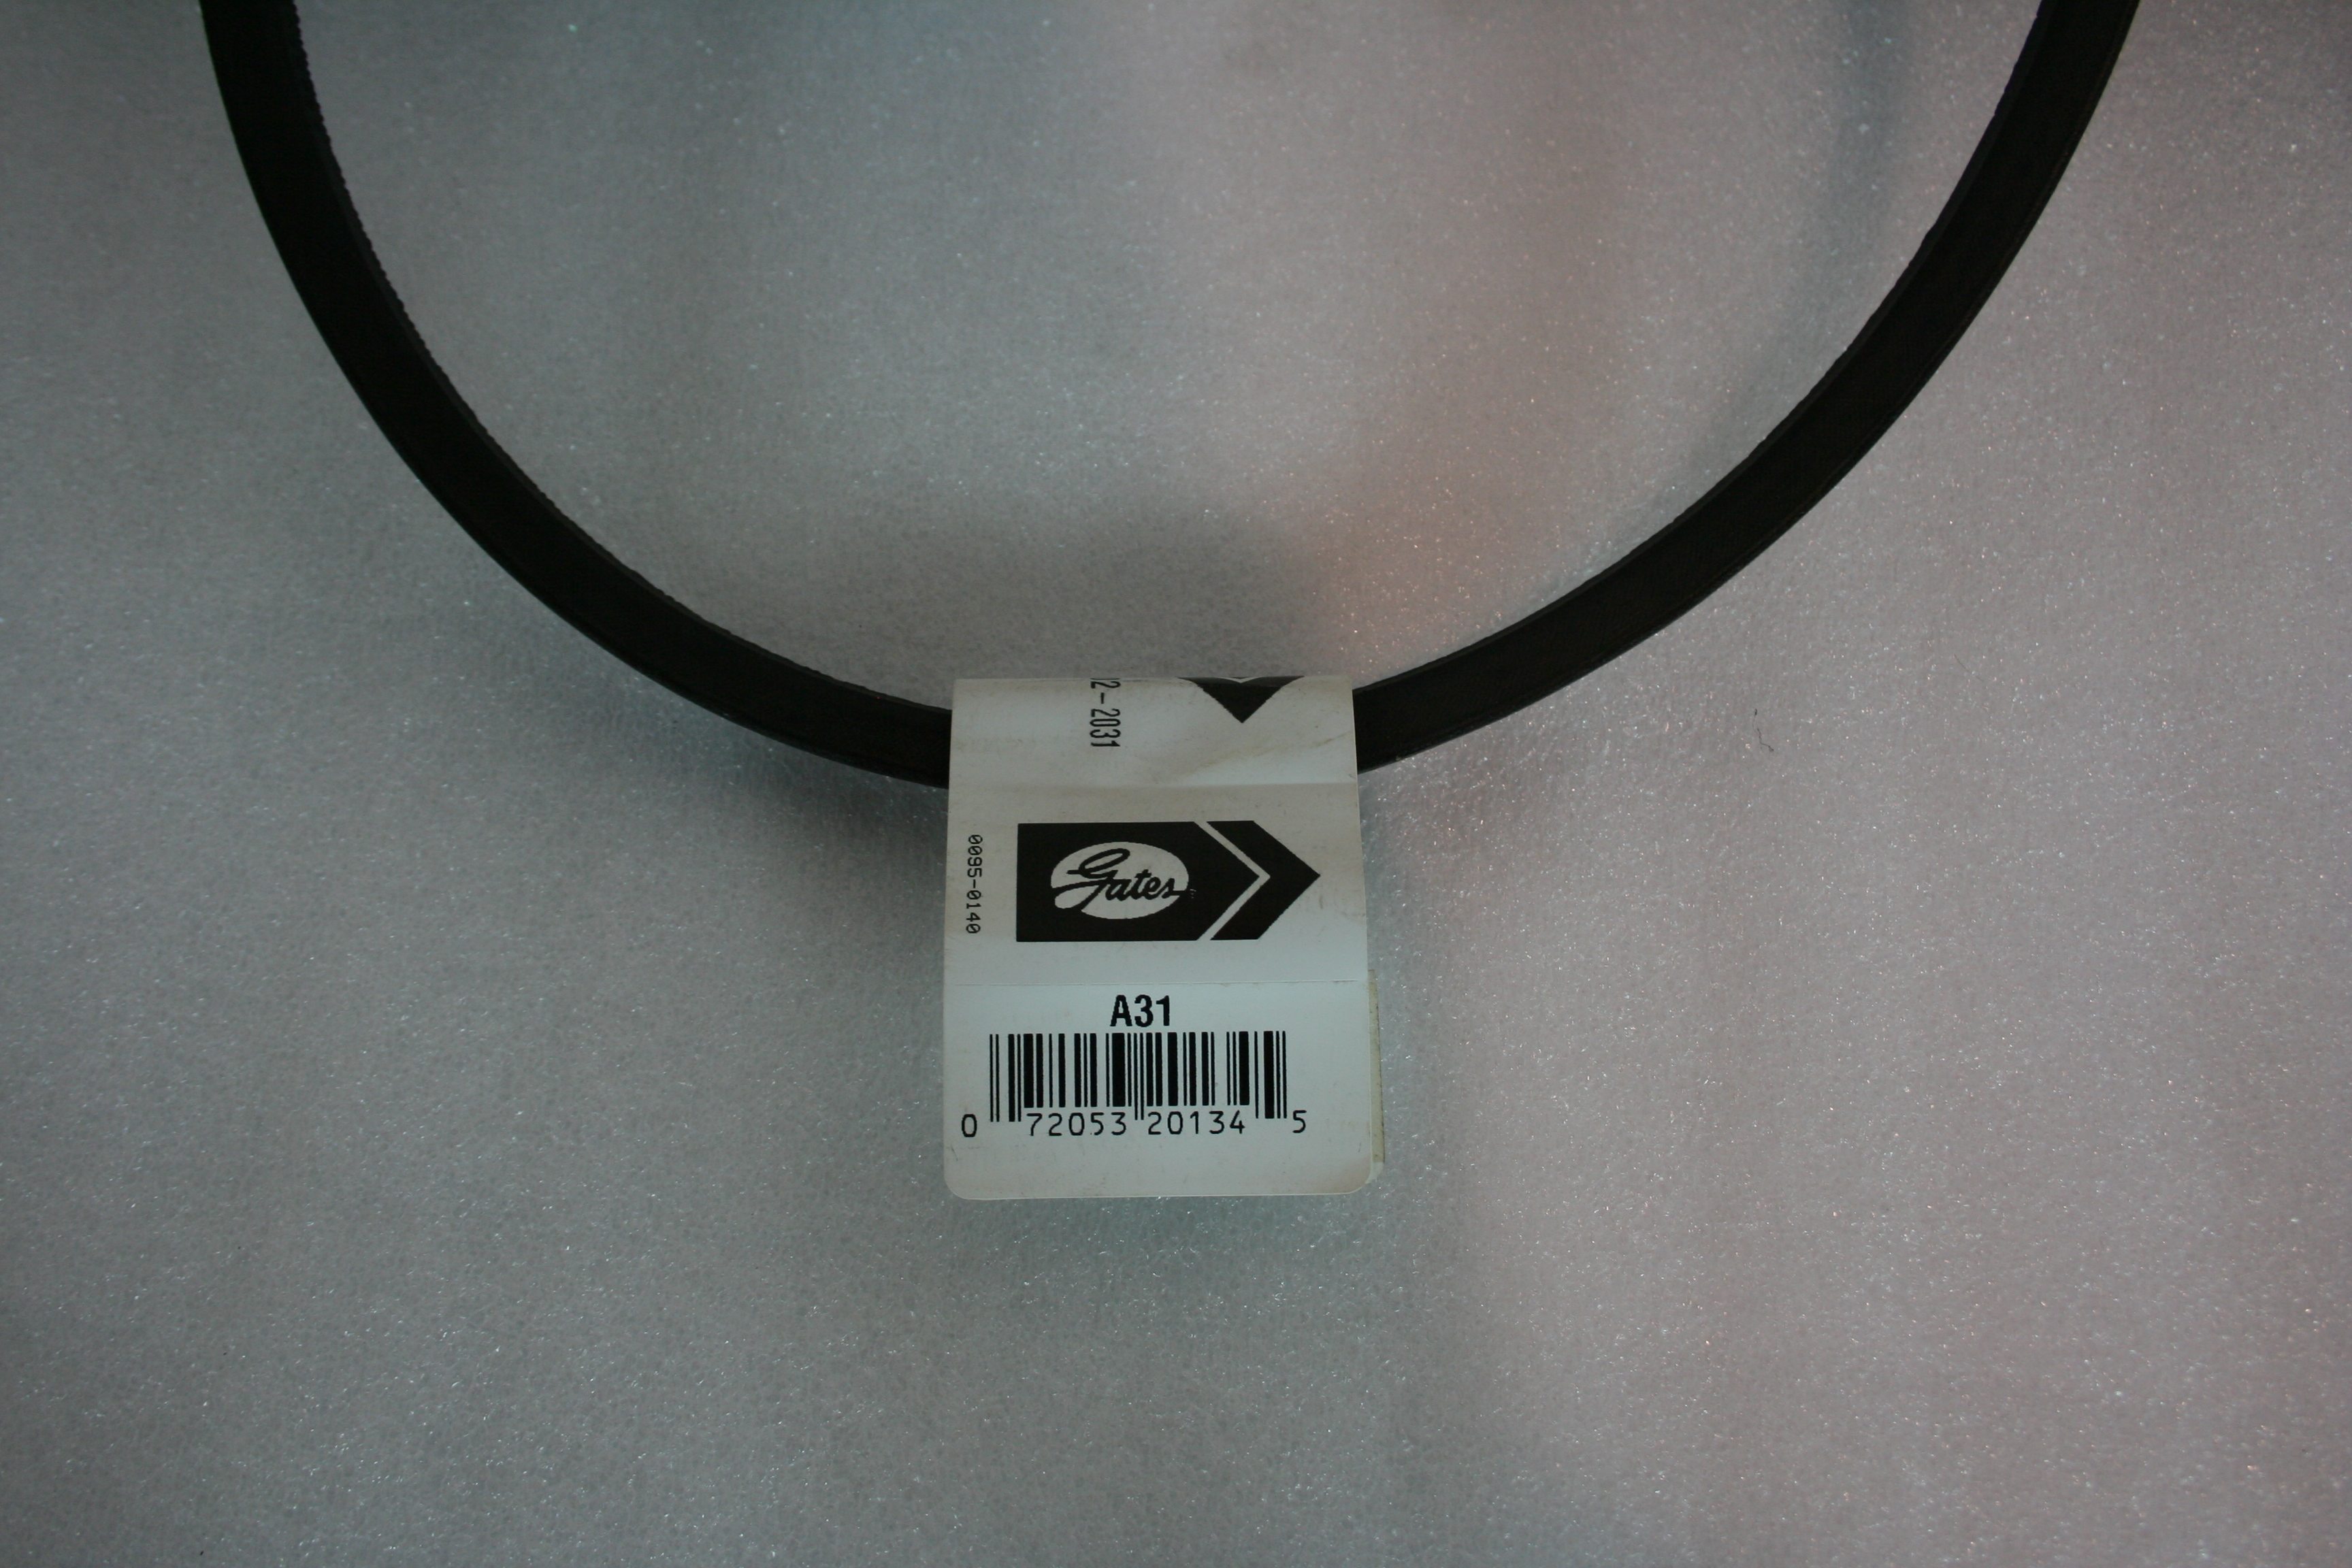 Drive Belt AX30 for Max-Air 35 E-1or E-3 Compressor